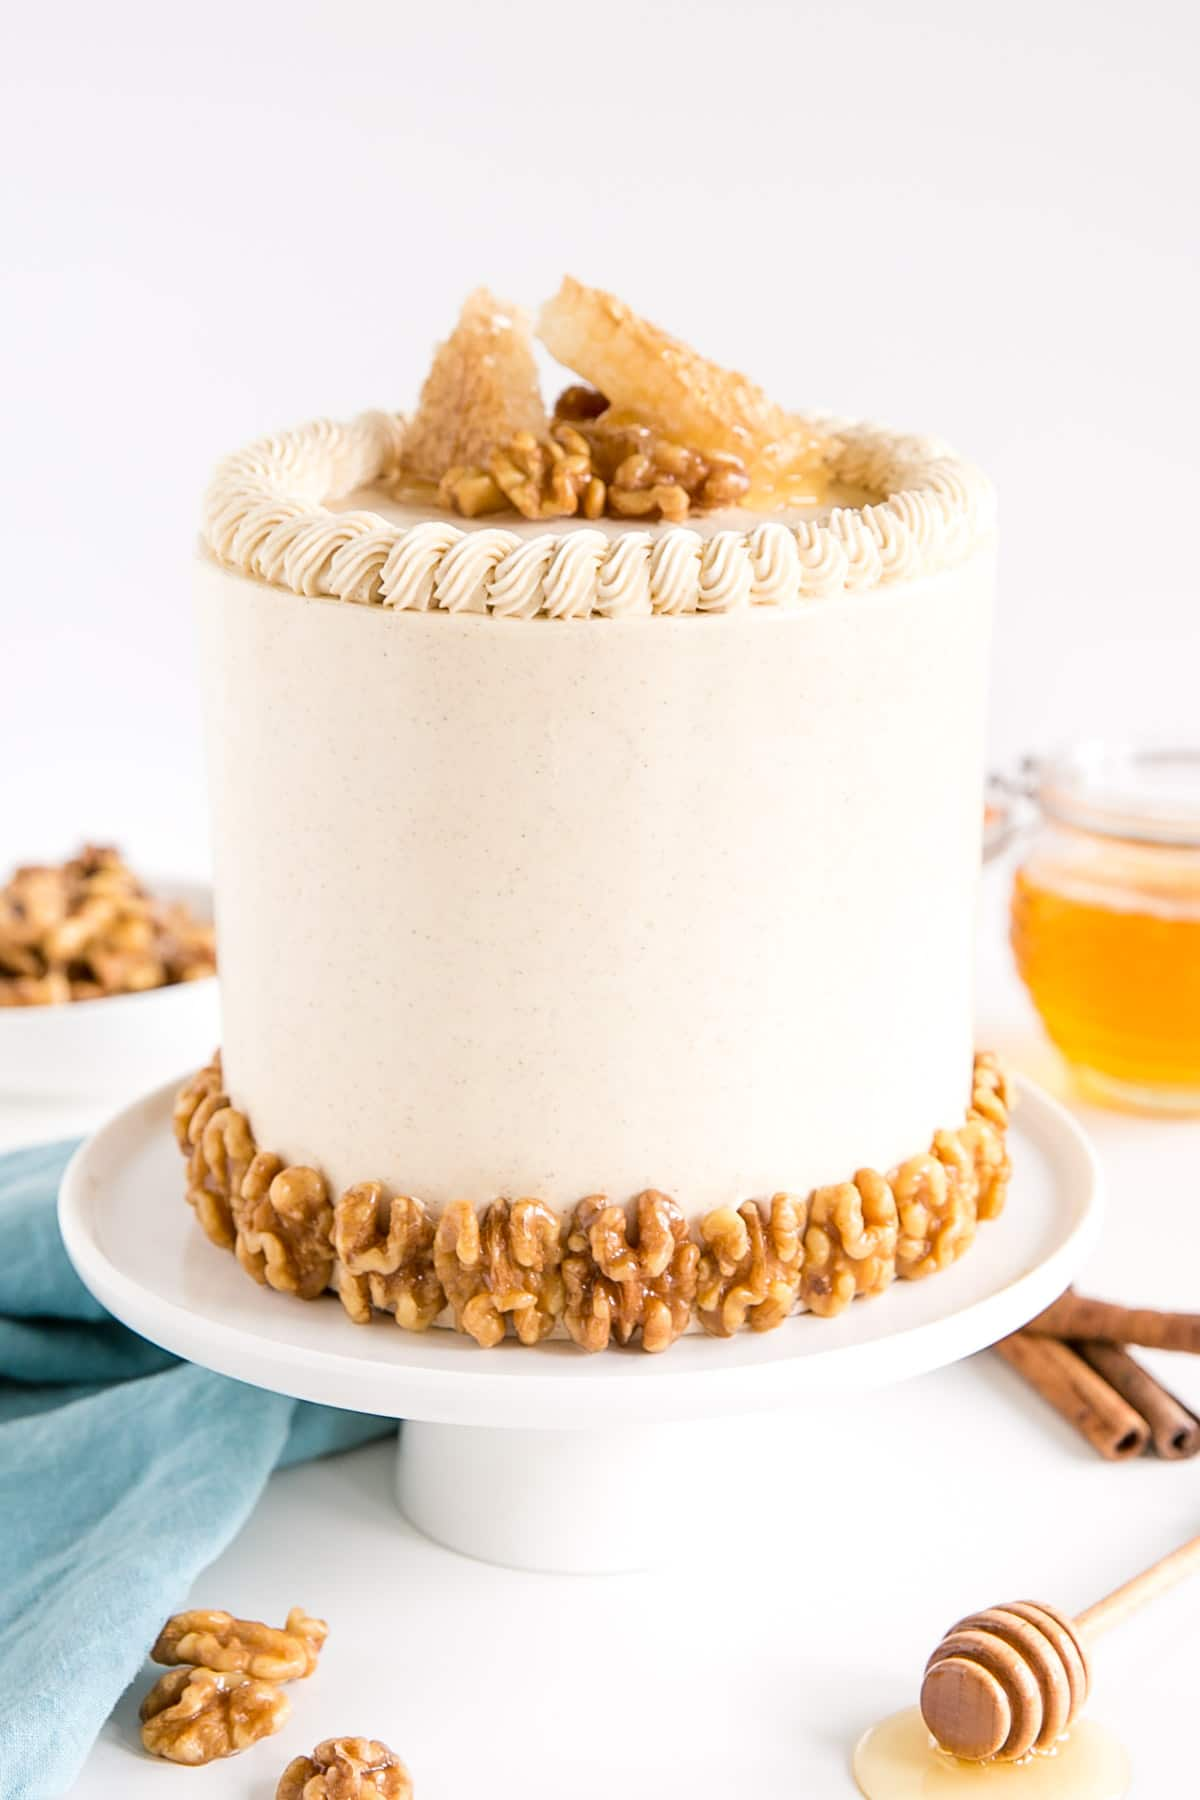 Cake on a white cake stand. Honey walnuts along the bottom and honeycomb on the top.